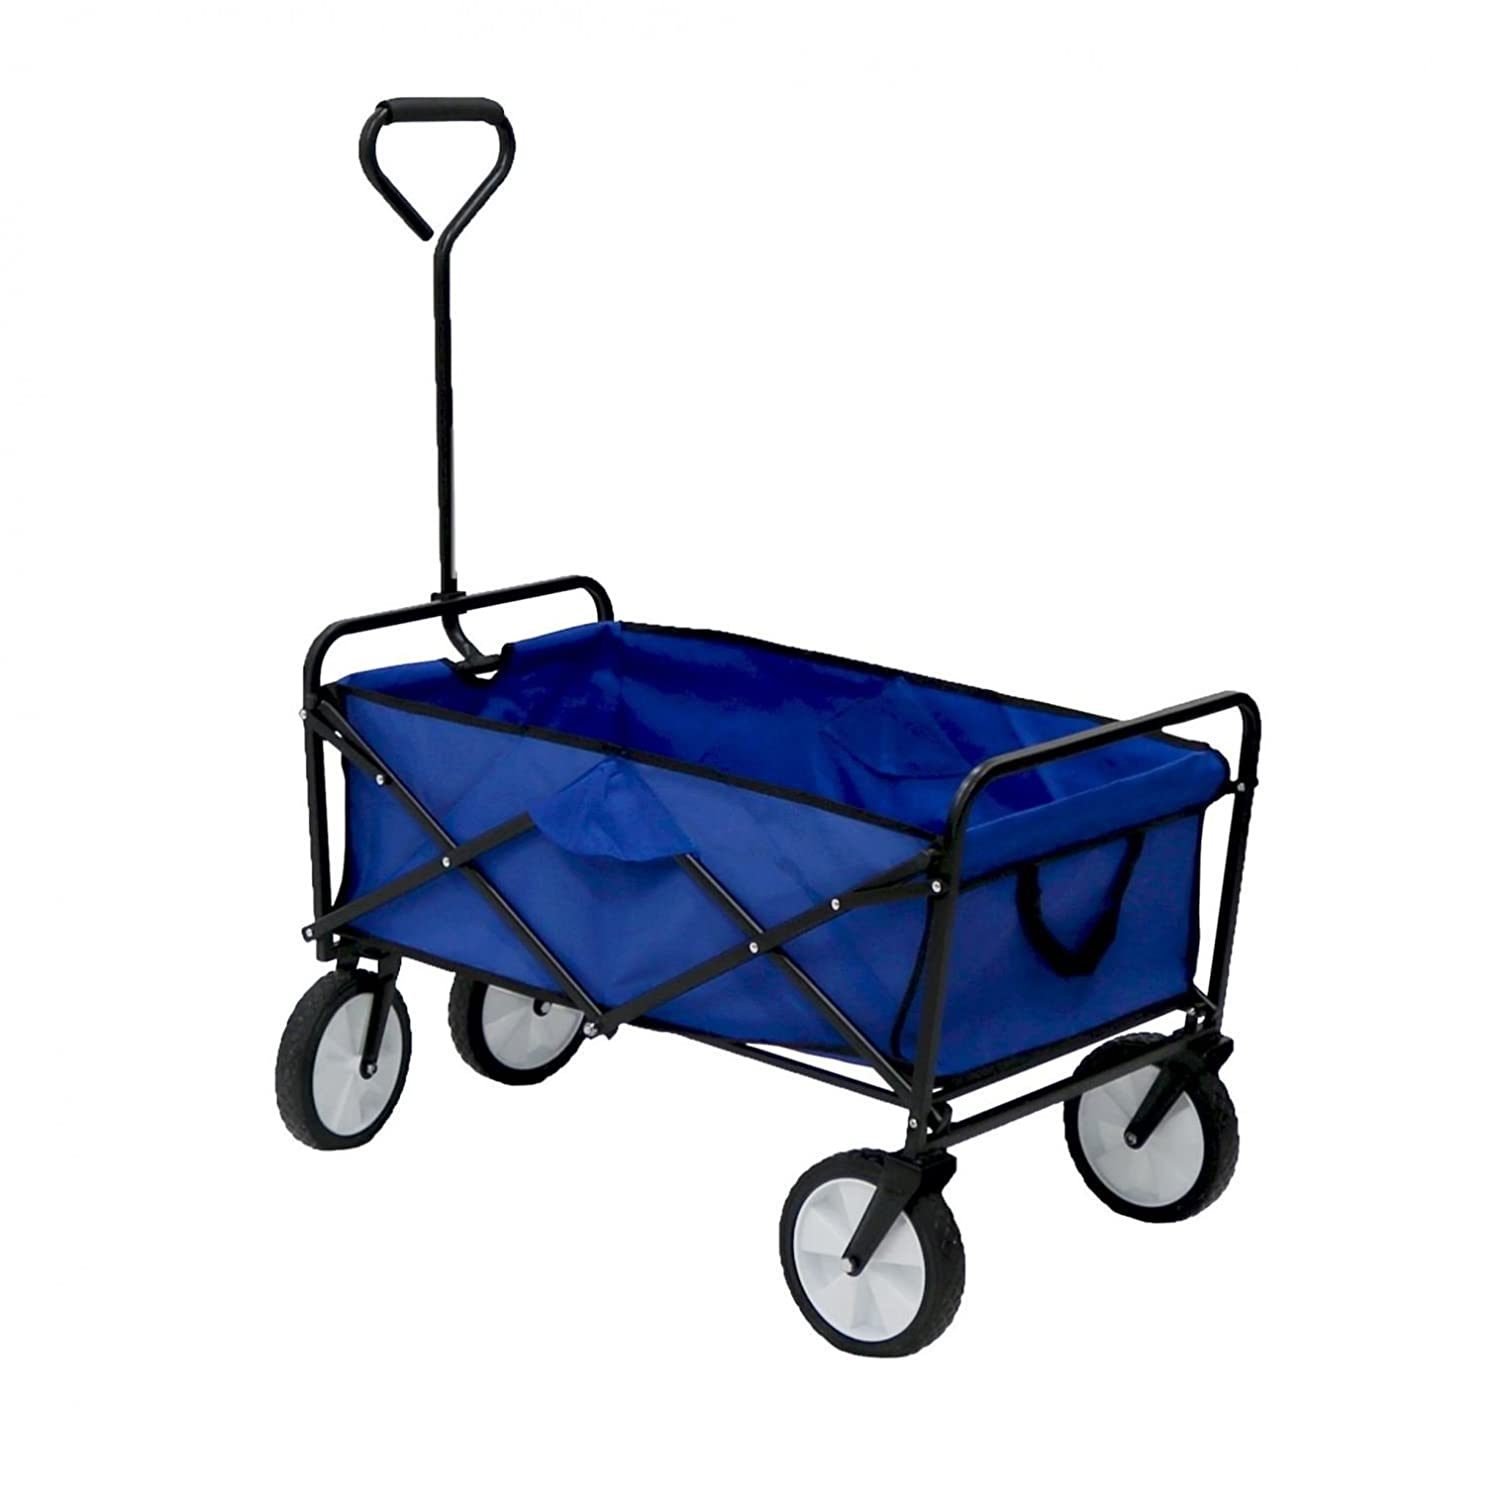 Oypla Blue Heavy Duty Foldable Garden Trolley Cart Wagon Truck Wheelbarrow 4031OYP